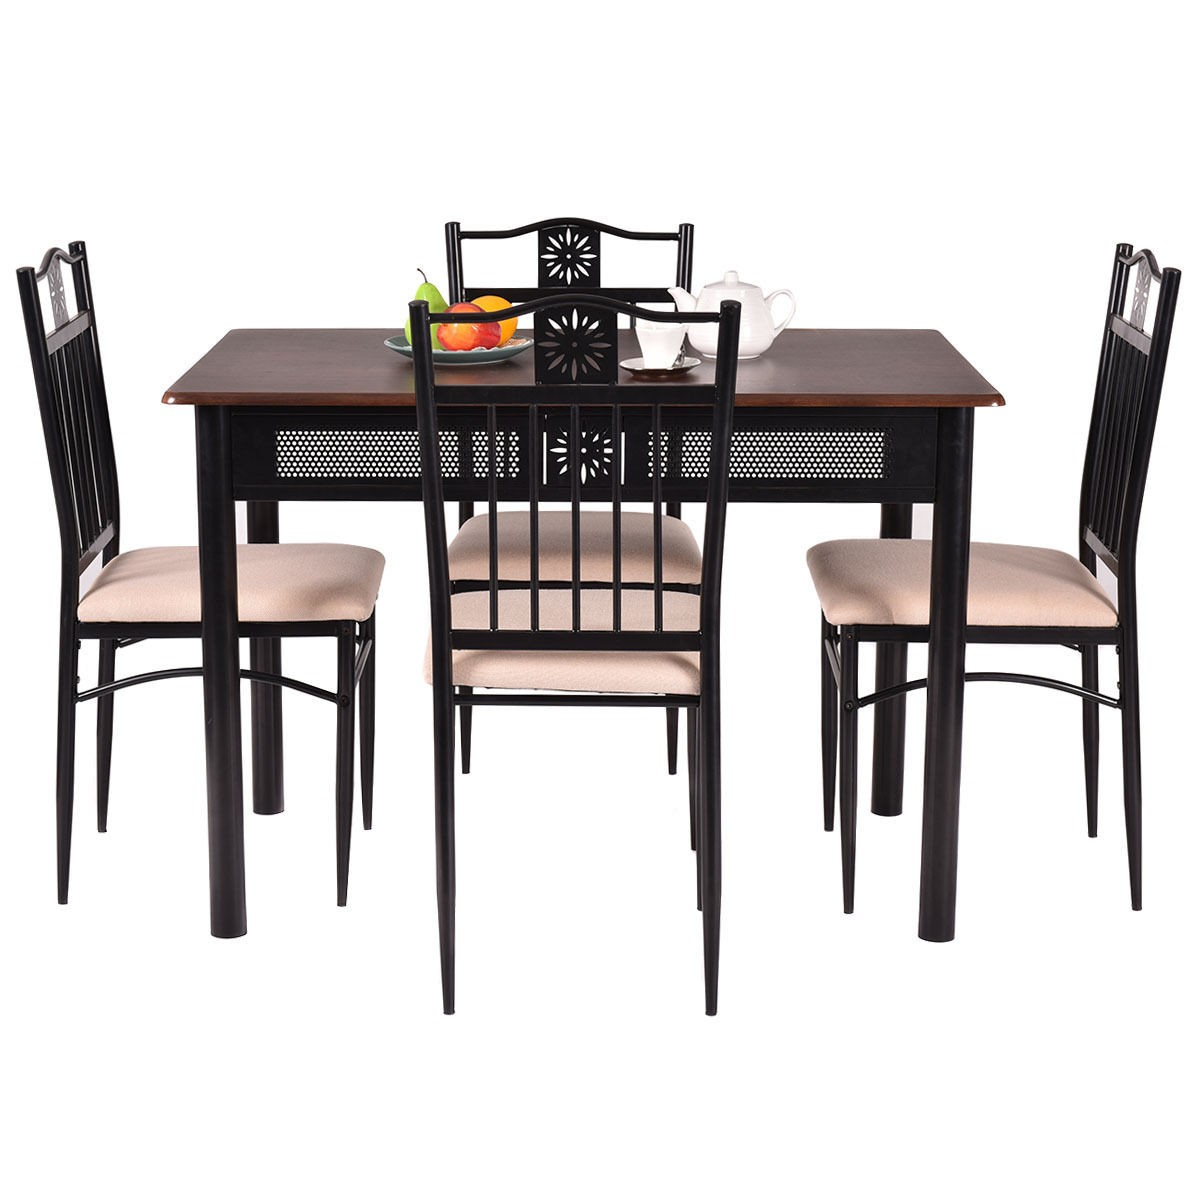 dining table with metal chairs herman miller eams chair 5 piece set wood and 4 kitchen